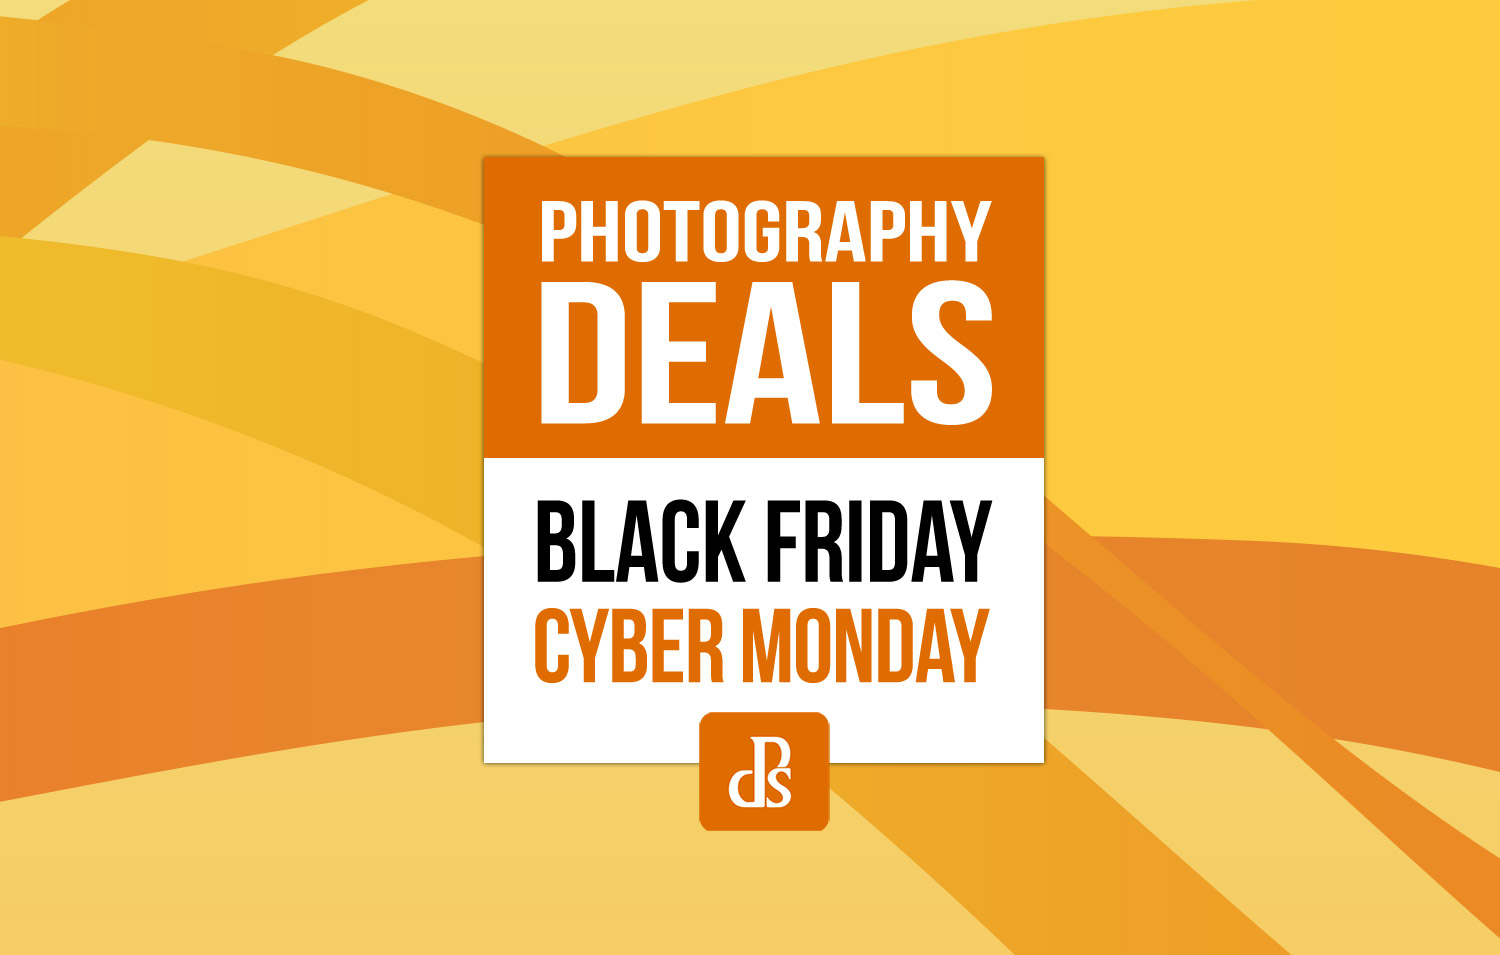 Black Friday Cyber Monday Photography Deals